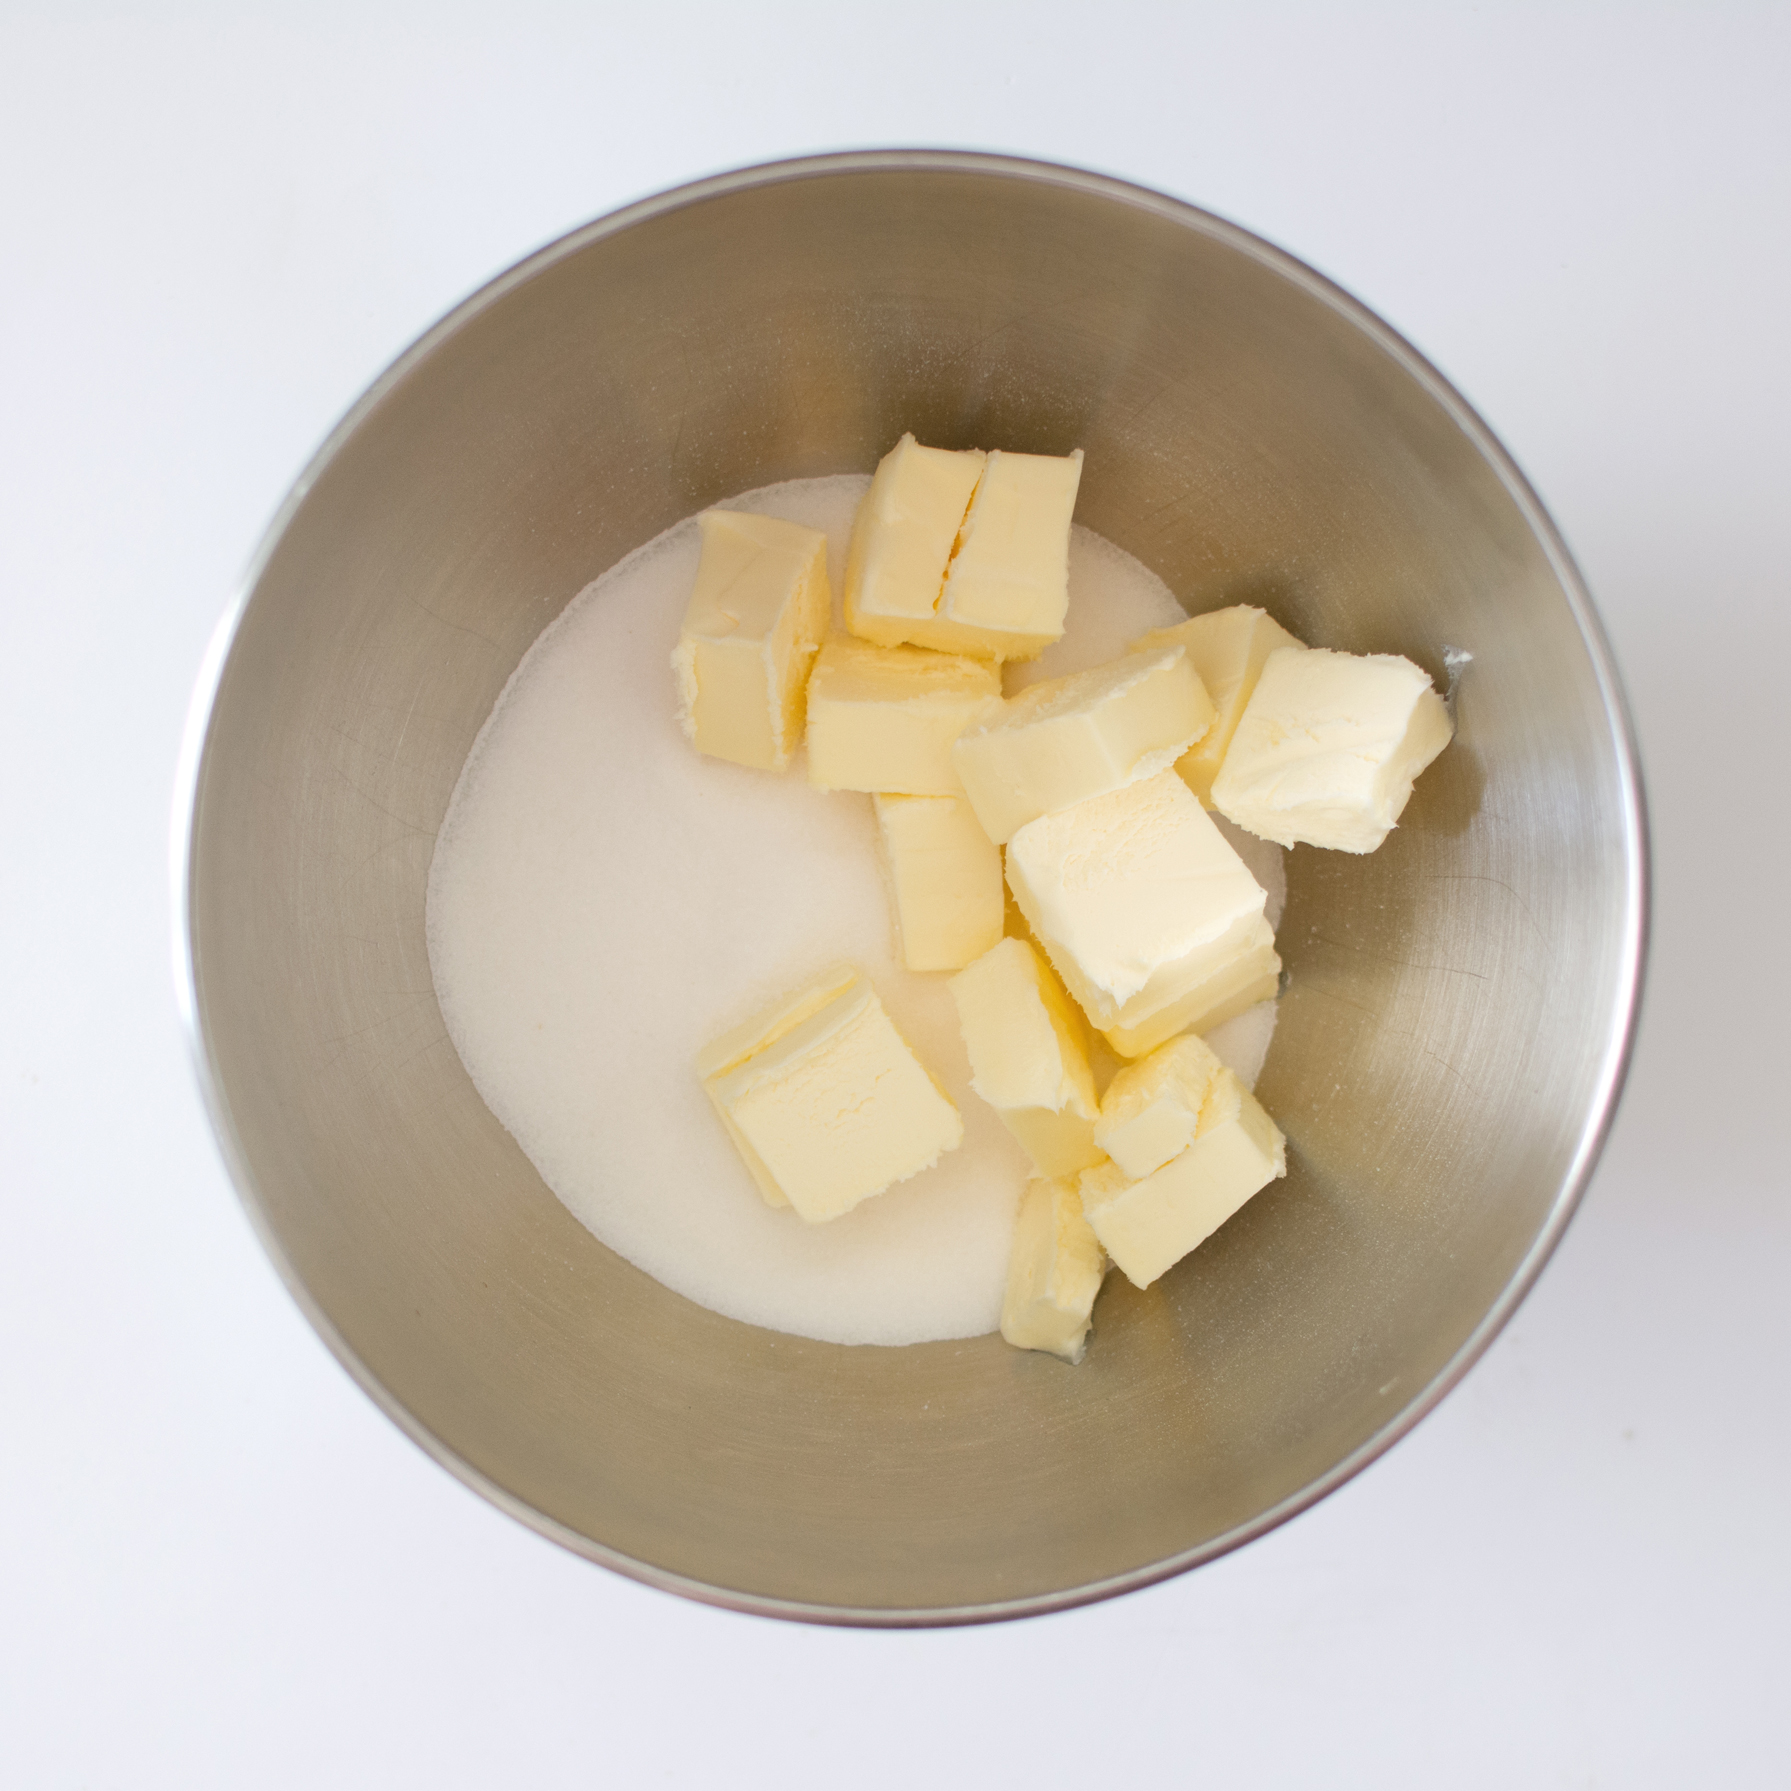 1. Combine butter and sugar in electric mixer.